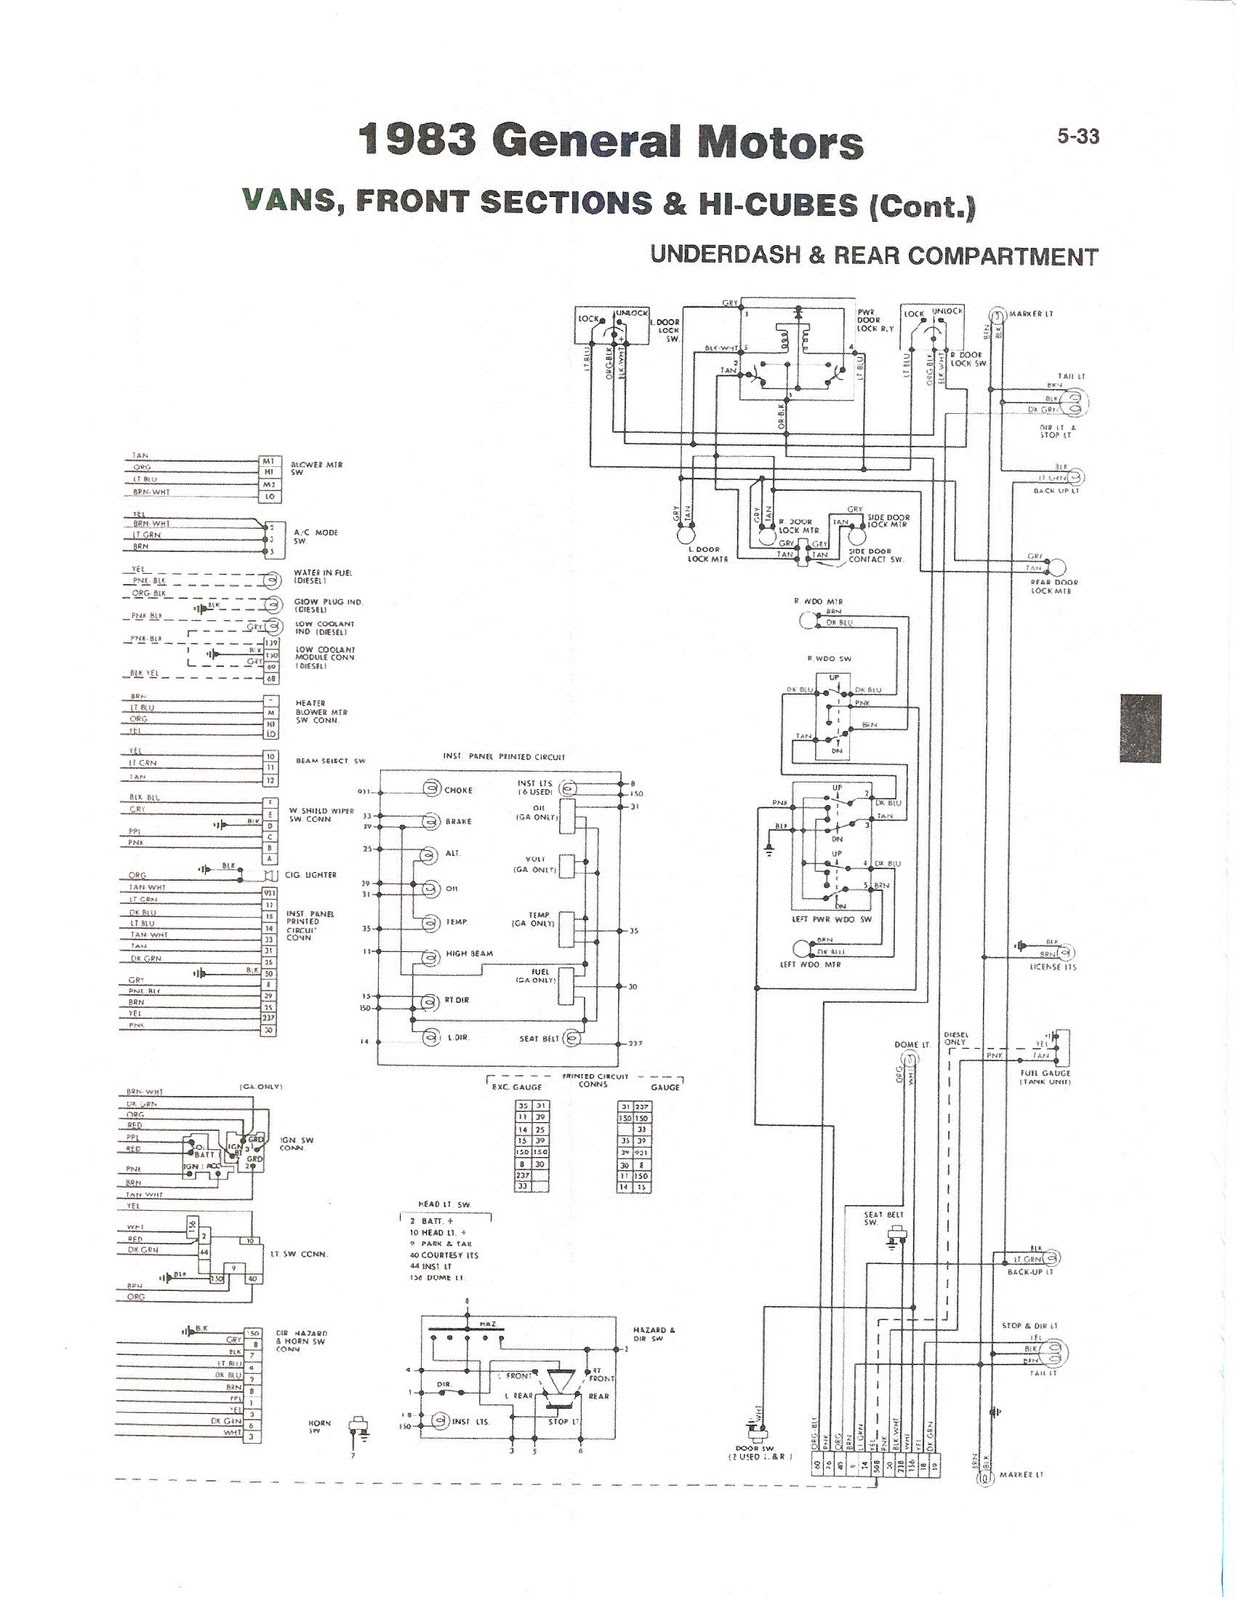 83+GM+Van+front+section+%26+Hi Cubes++underdash+%26+rear+compartment 1983 fleetwood pace arrow owners manuals wireing diagram 83 gm 99 fleetwood rv fuse box location at cita.asia